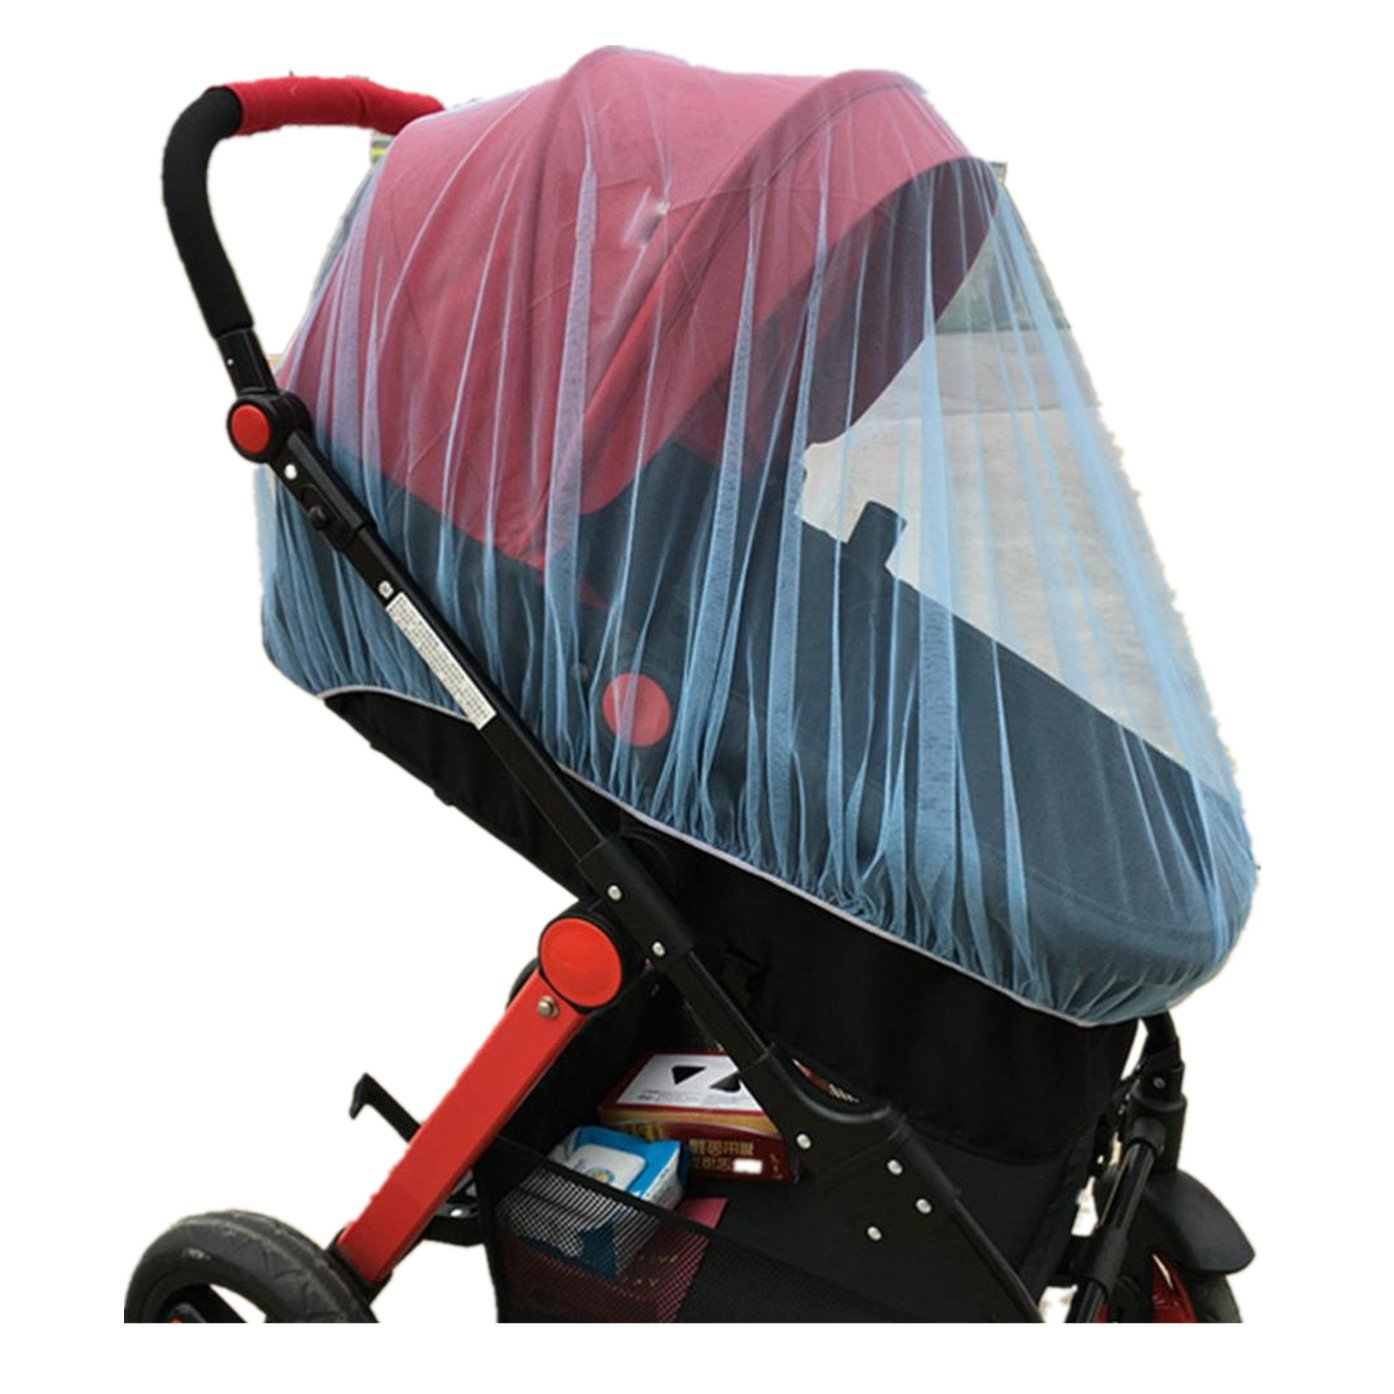 ZTY66 Baby Mosquito Net for Strollers, Carriers, Car Seats, Cradles | Windproof Protection - Travel-Friendly, Outdoor Use - Portable & Durable Baby Insect Netting (Blue)